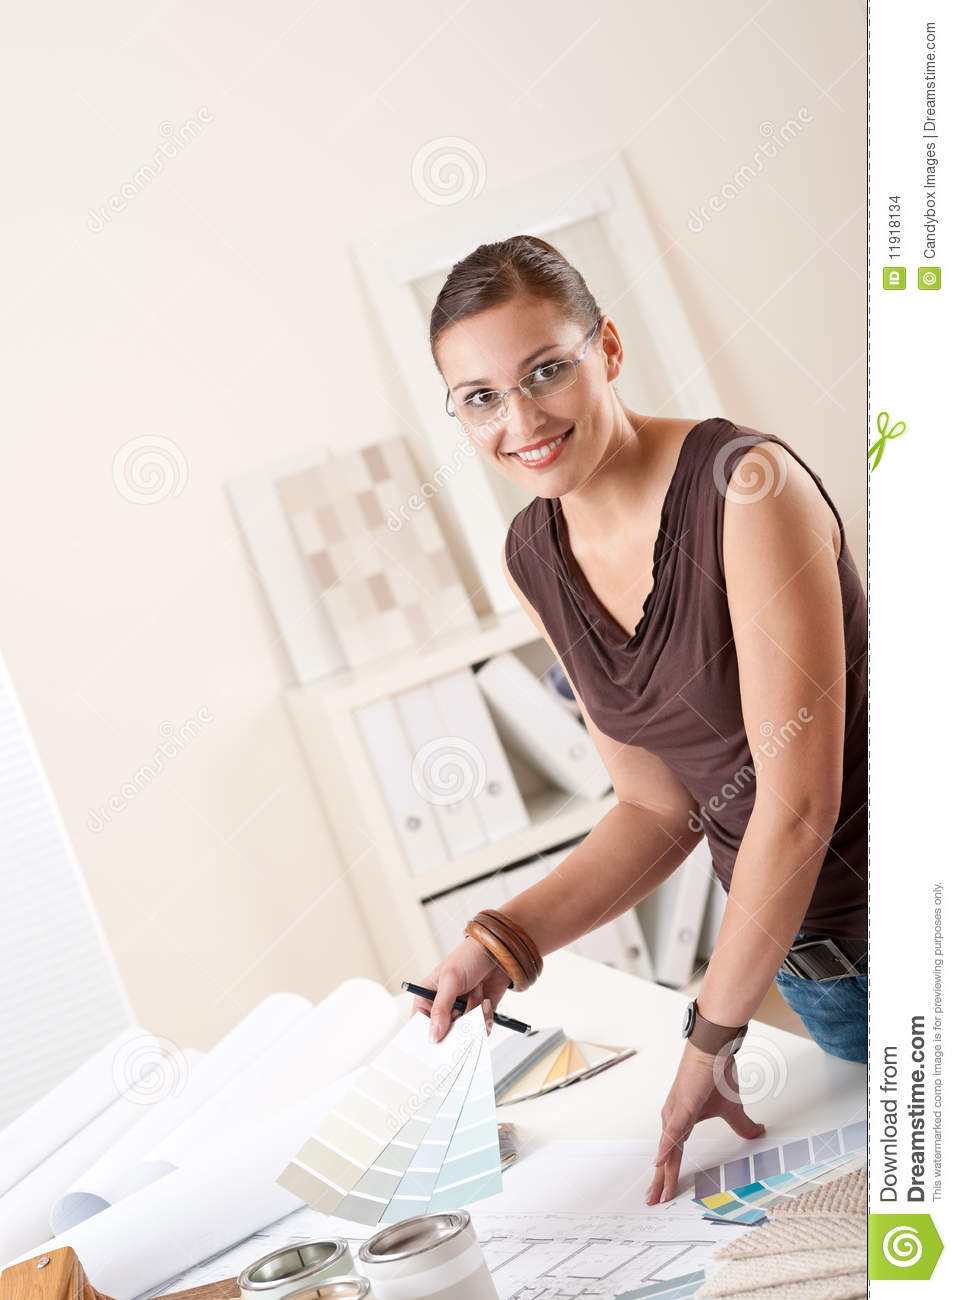 Successful Interior Designer Woman At Office Stock Images